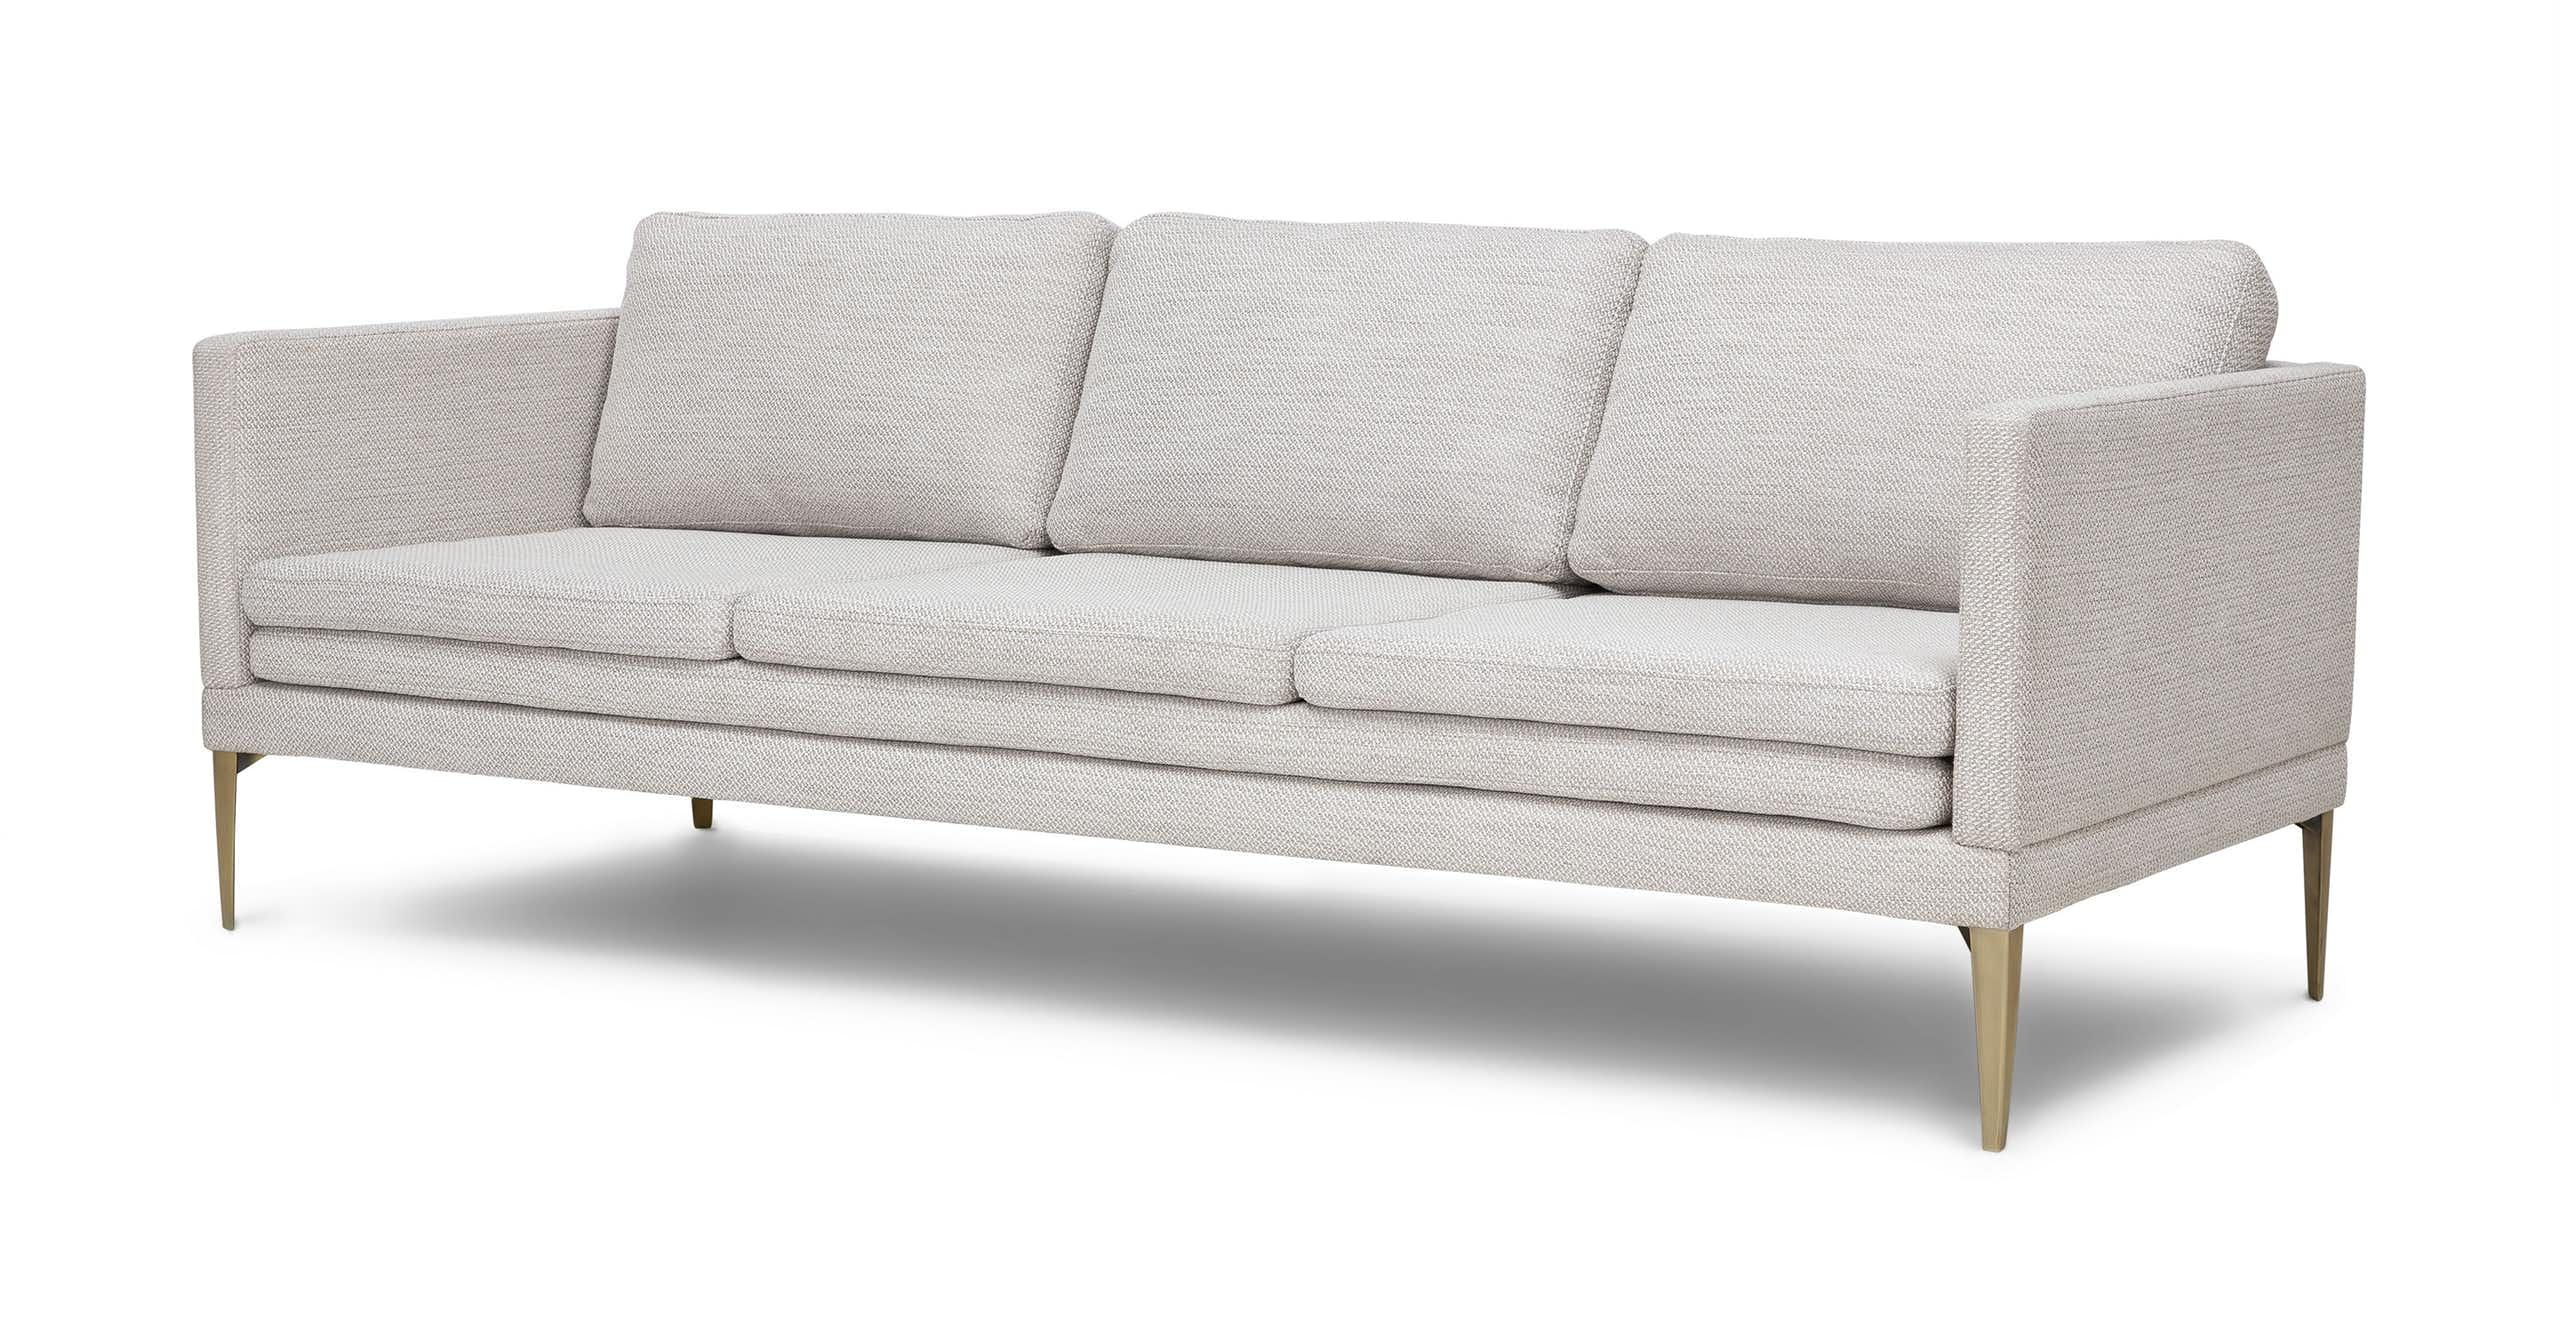 Slim And Elegant This Sofa Has An Unexpected Triple Layer Seat And Stiletto Metal Legs The D Living Room Colors Mid Century Modern Sofa Interior Paint Colors